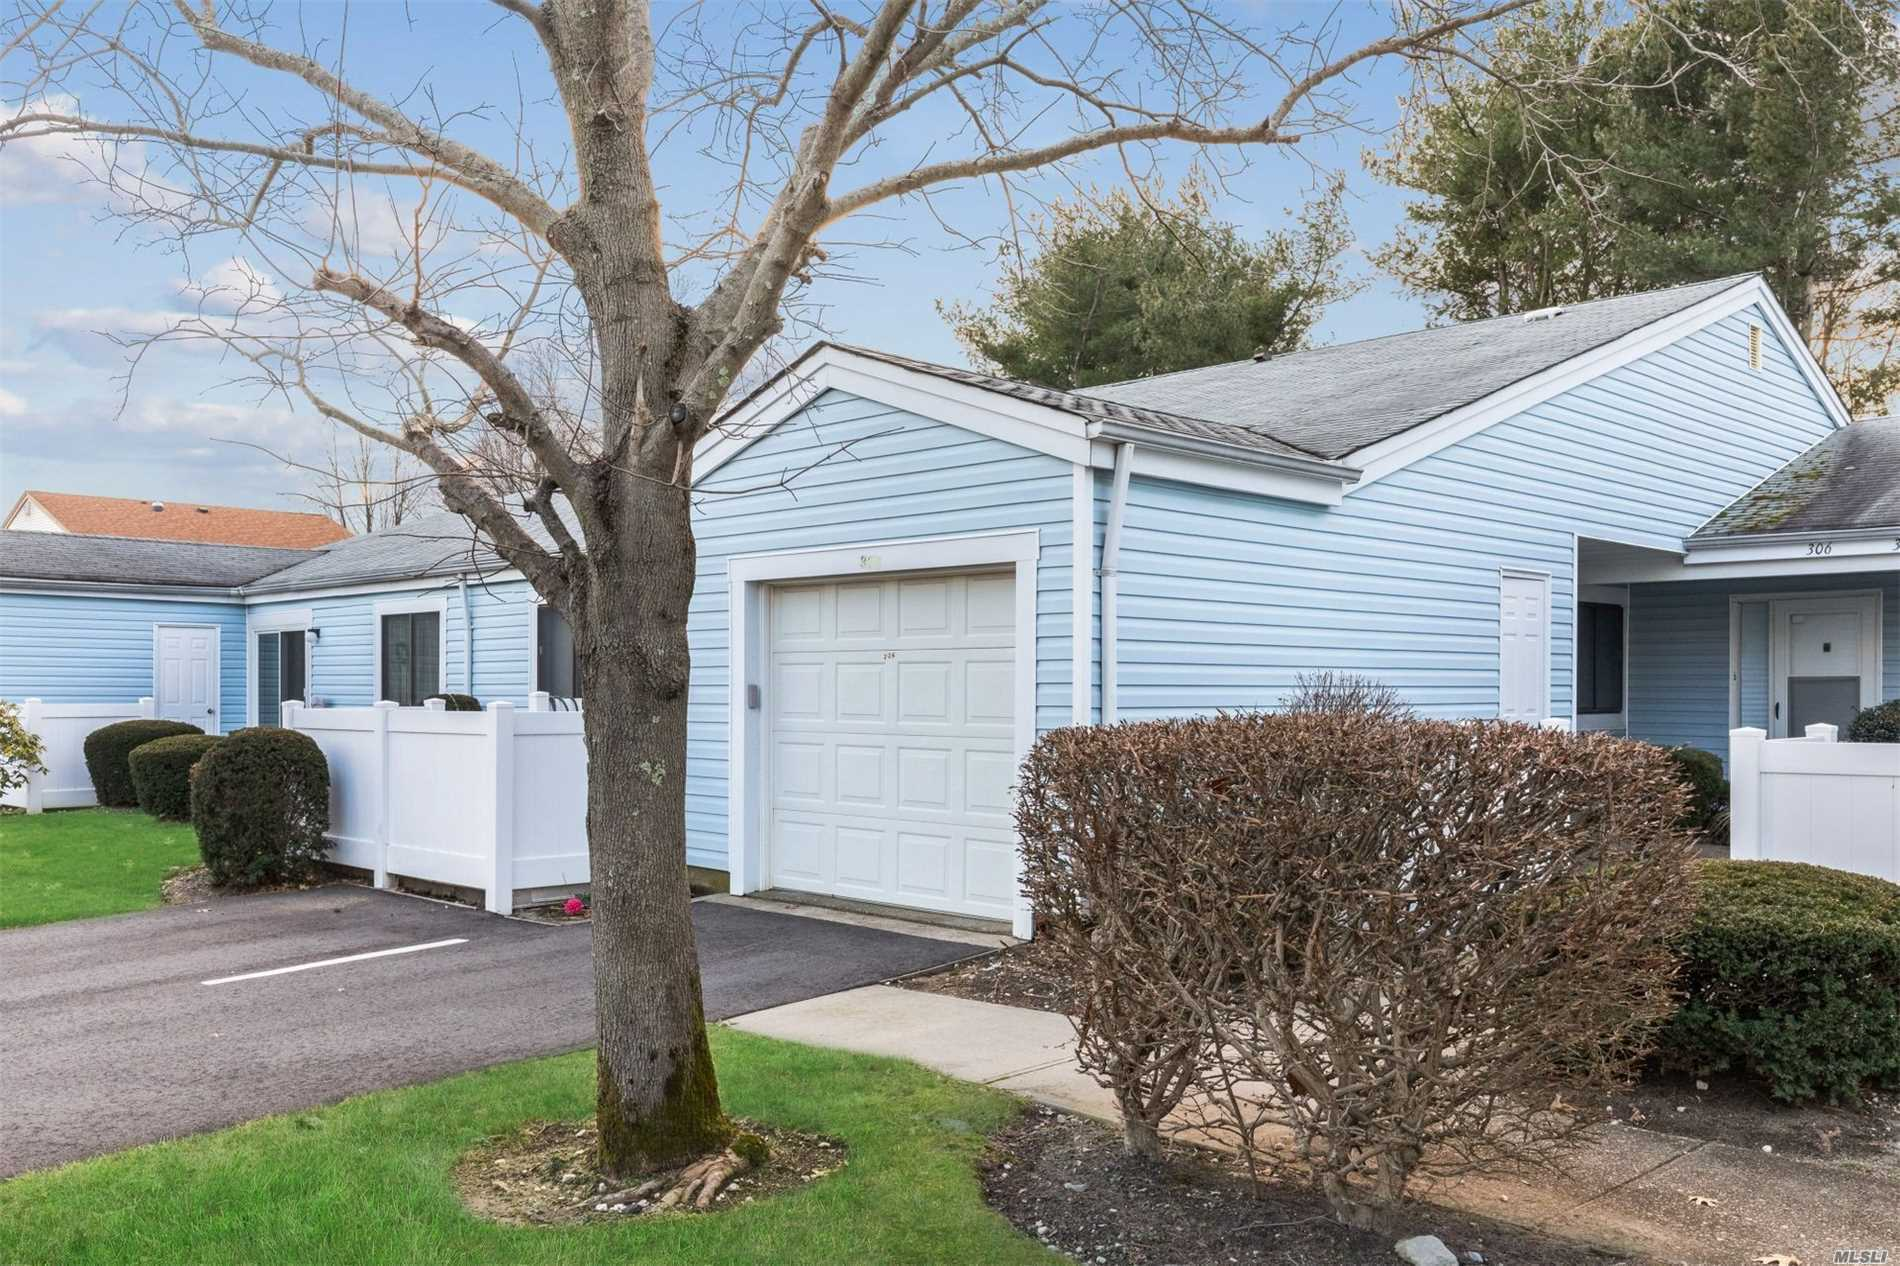 Property for sale at 305 Bentley Ct, St. James,  NY 11780